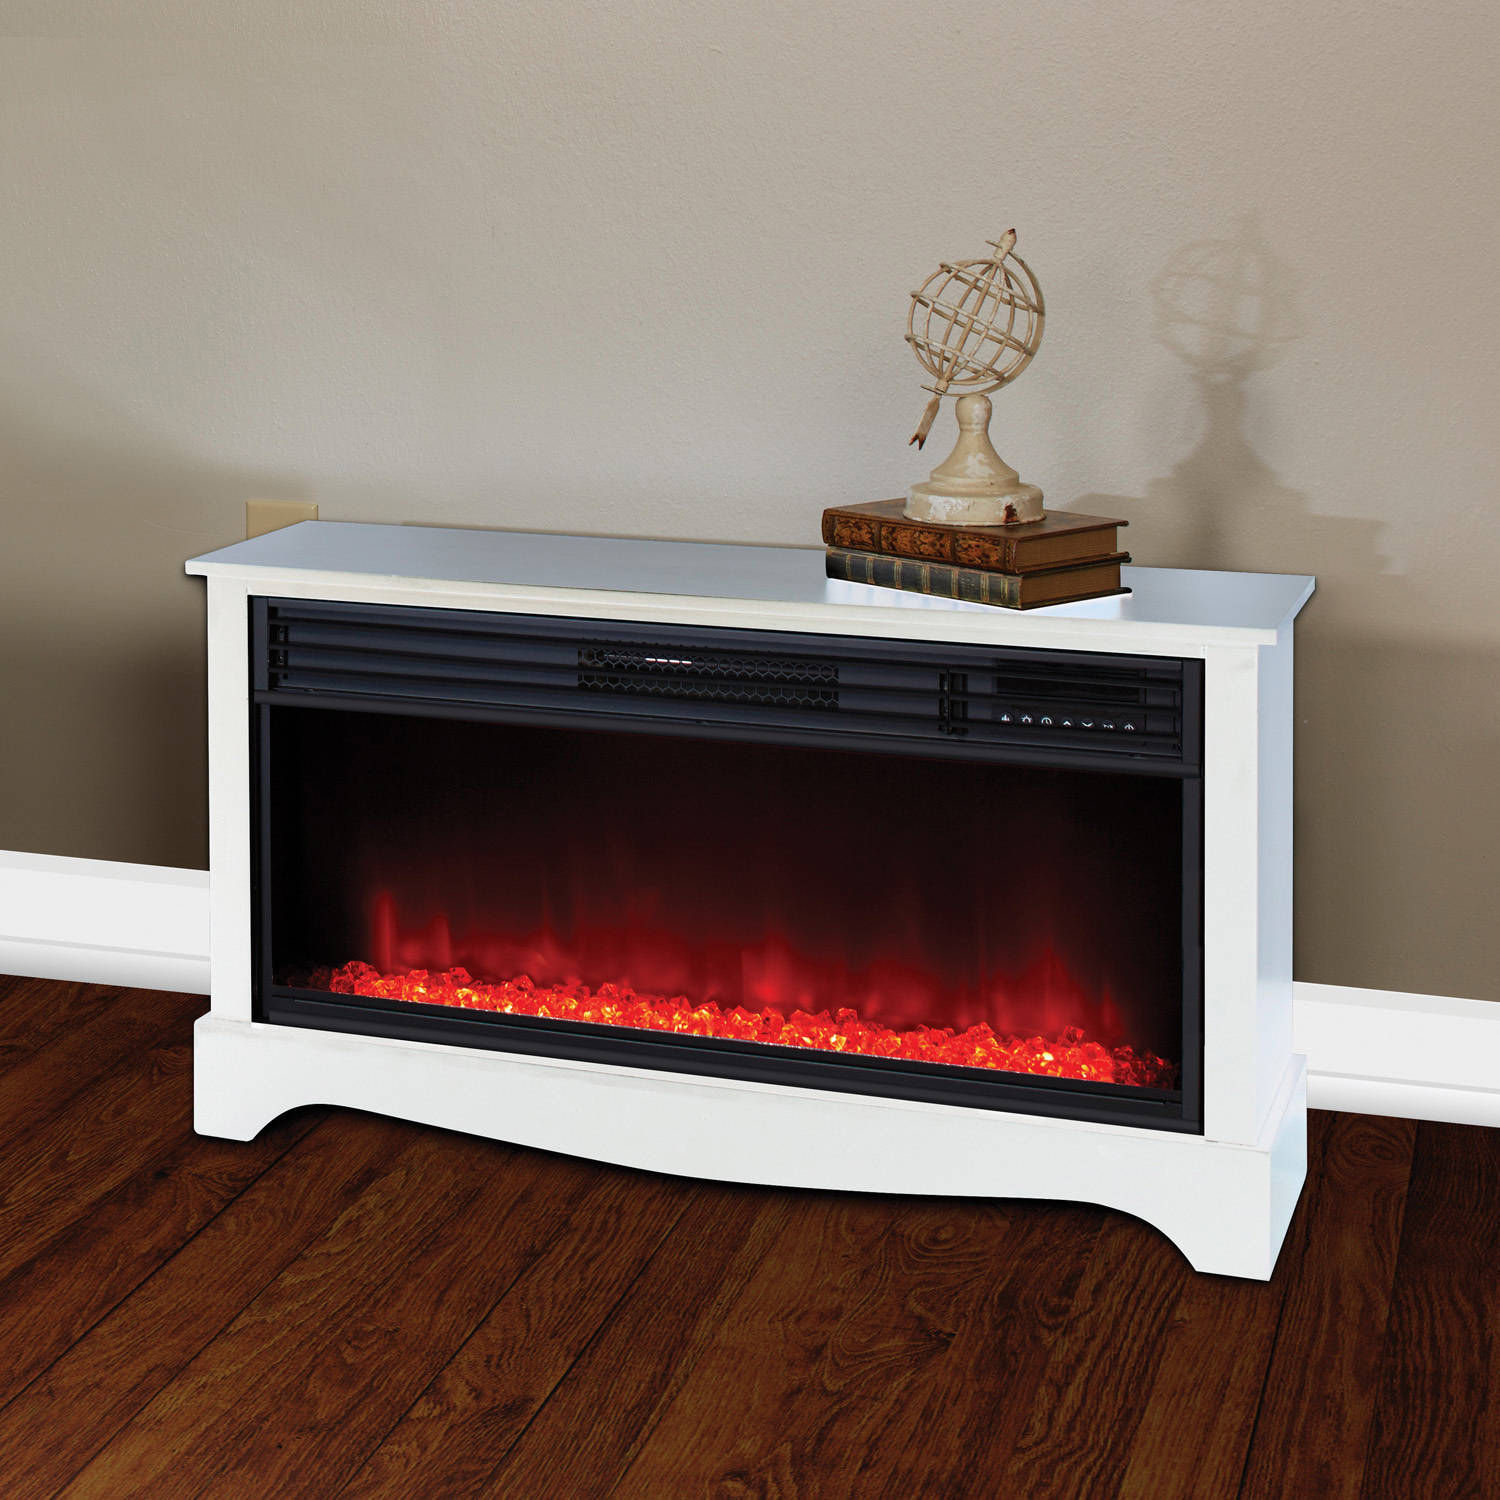 Lifesource 20 Tall Heater Fireplace with Color Change LED Affect White Cabinet  eBay